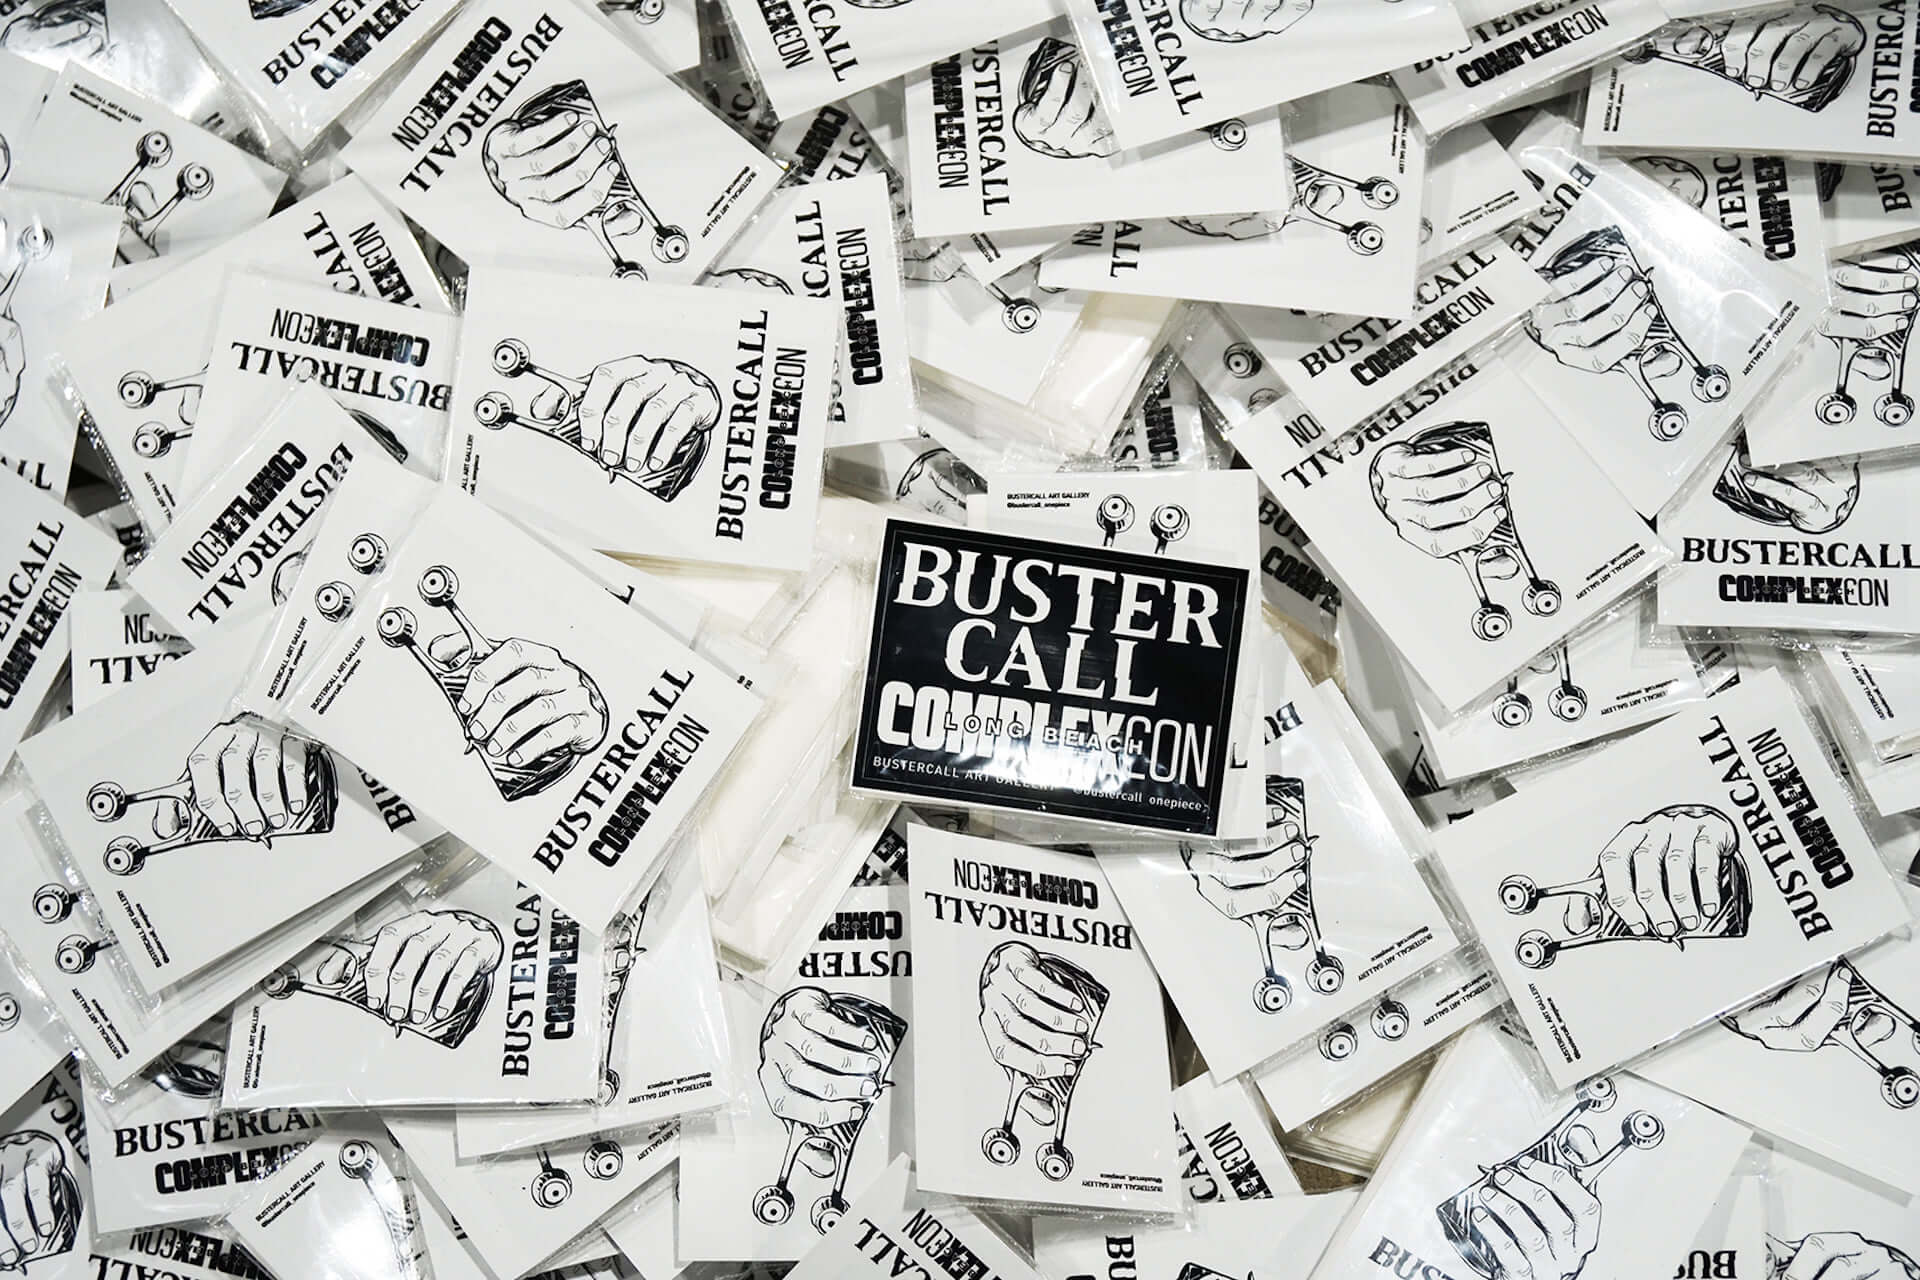 """『ONE PIECE』のアートプロジェクト""""BUSTERCALL ART GALLERY""""がLAで開催の<コンプレックスコン>初出店! ArtCulture191106_bustercall_8-1920x1280"""